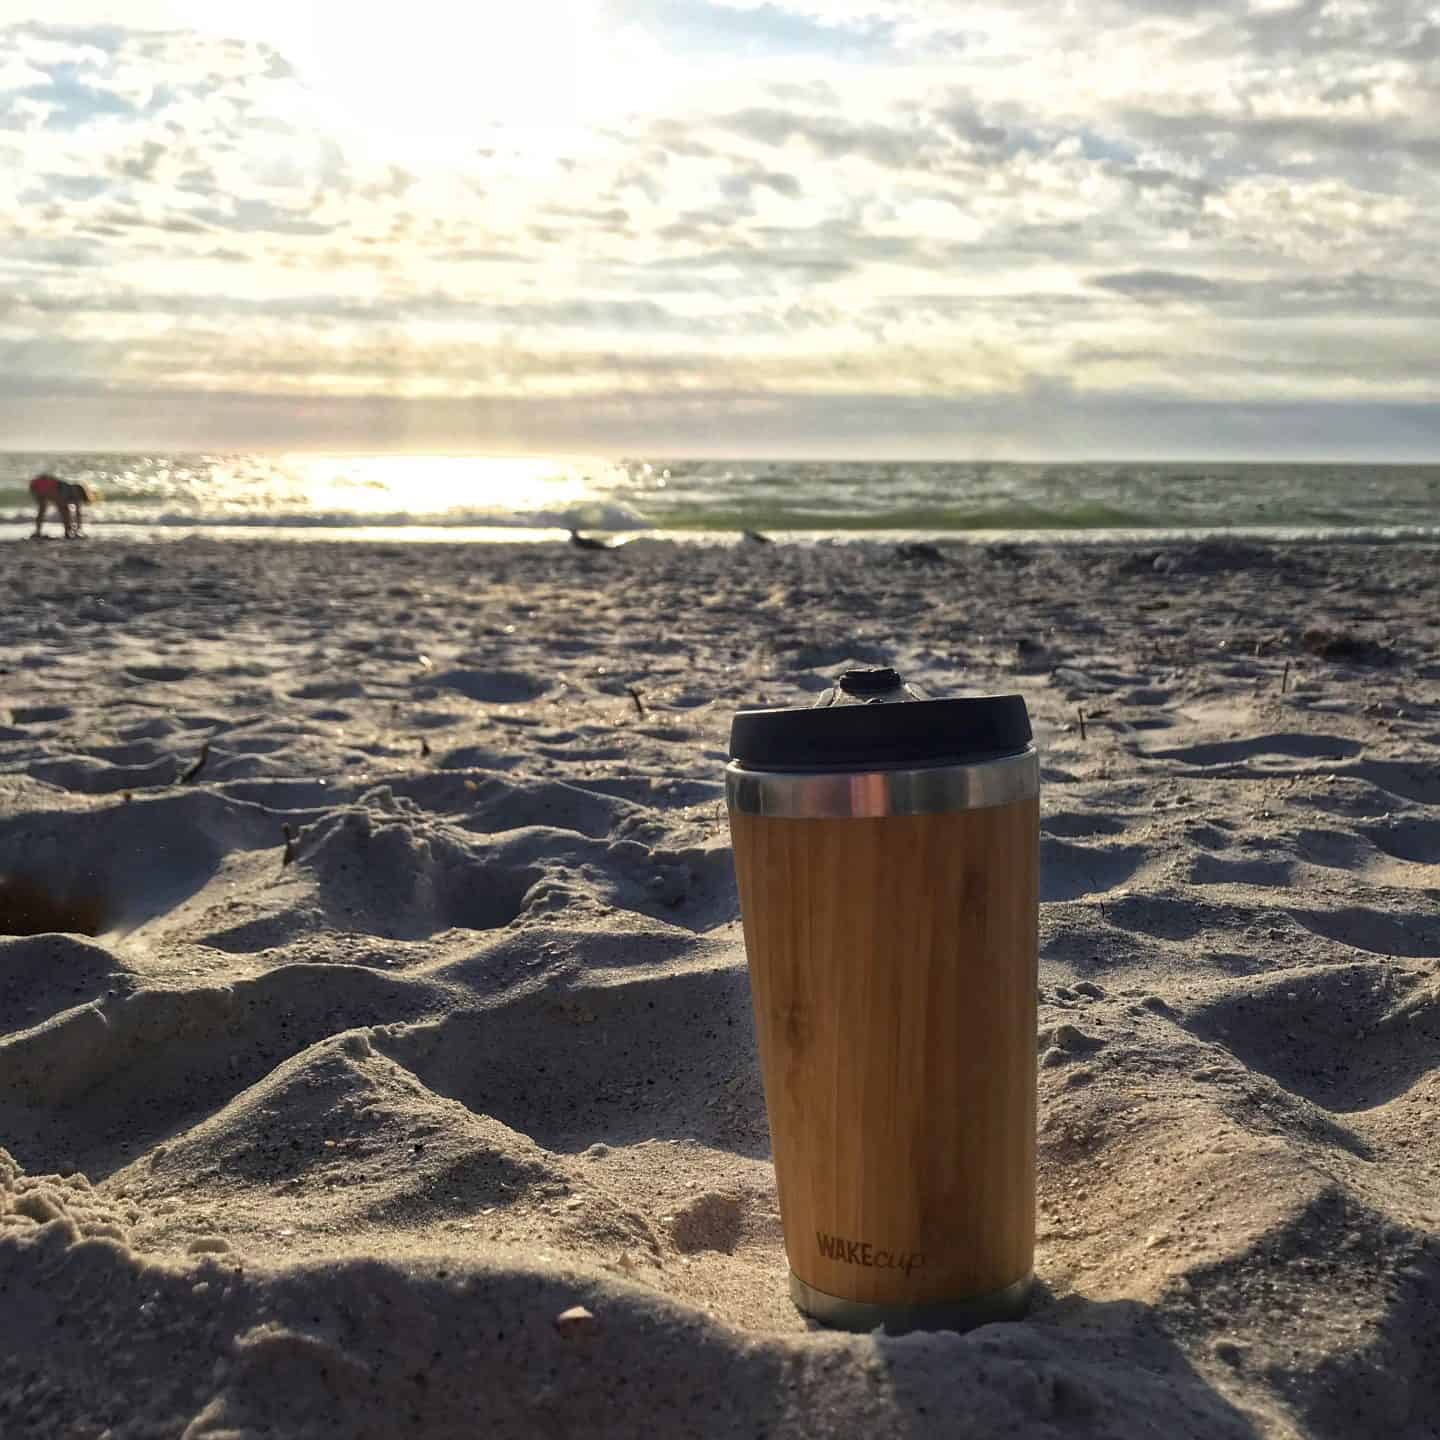 Global WakeCup reusable cup on a beach